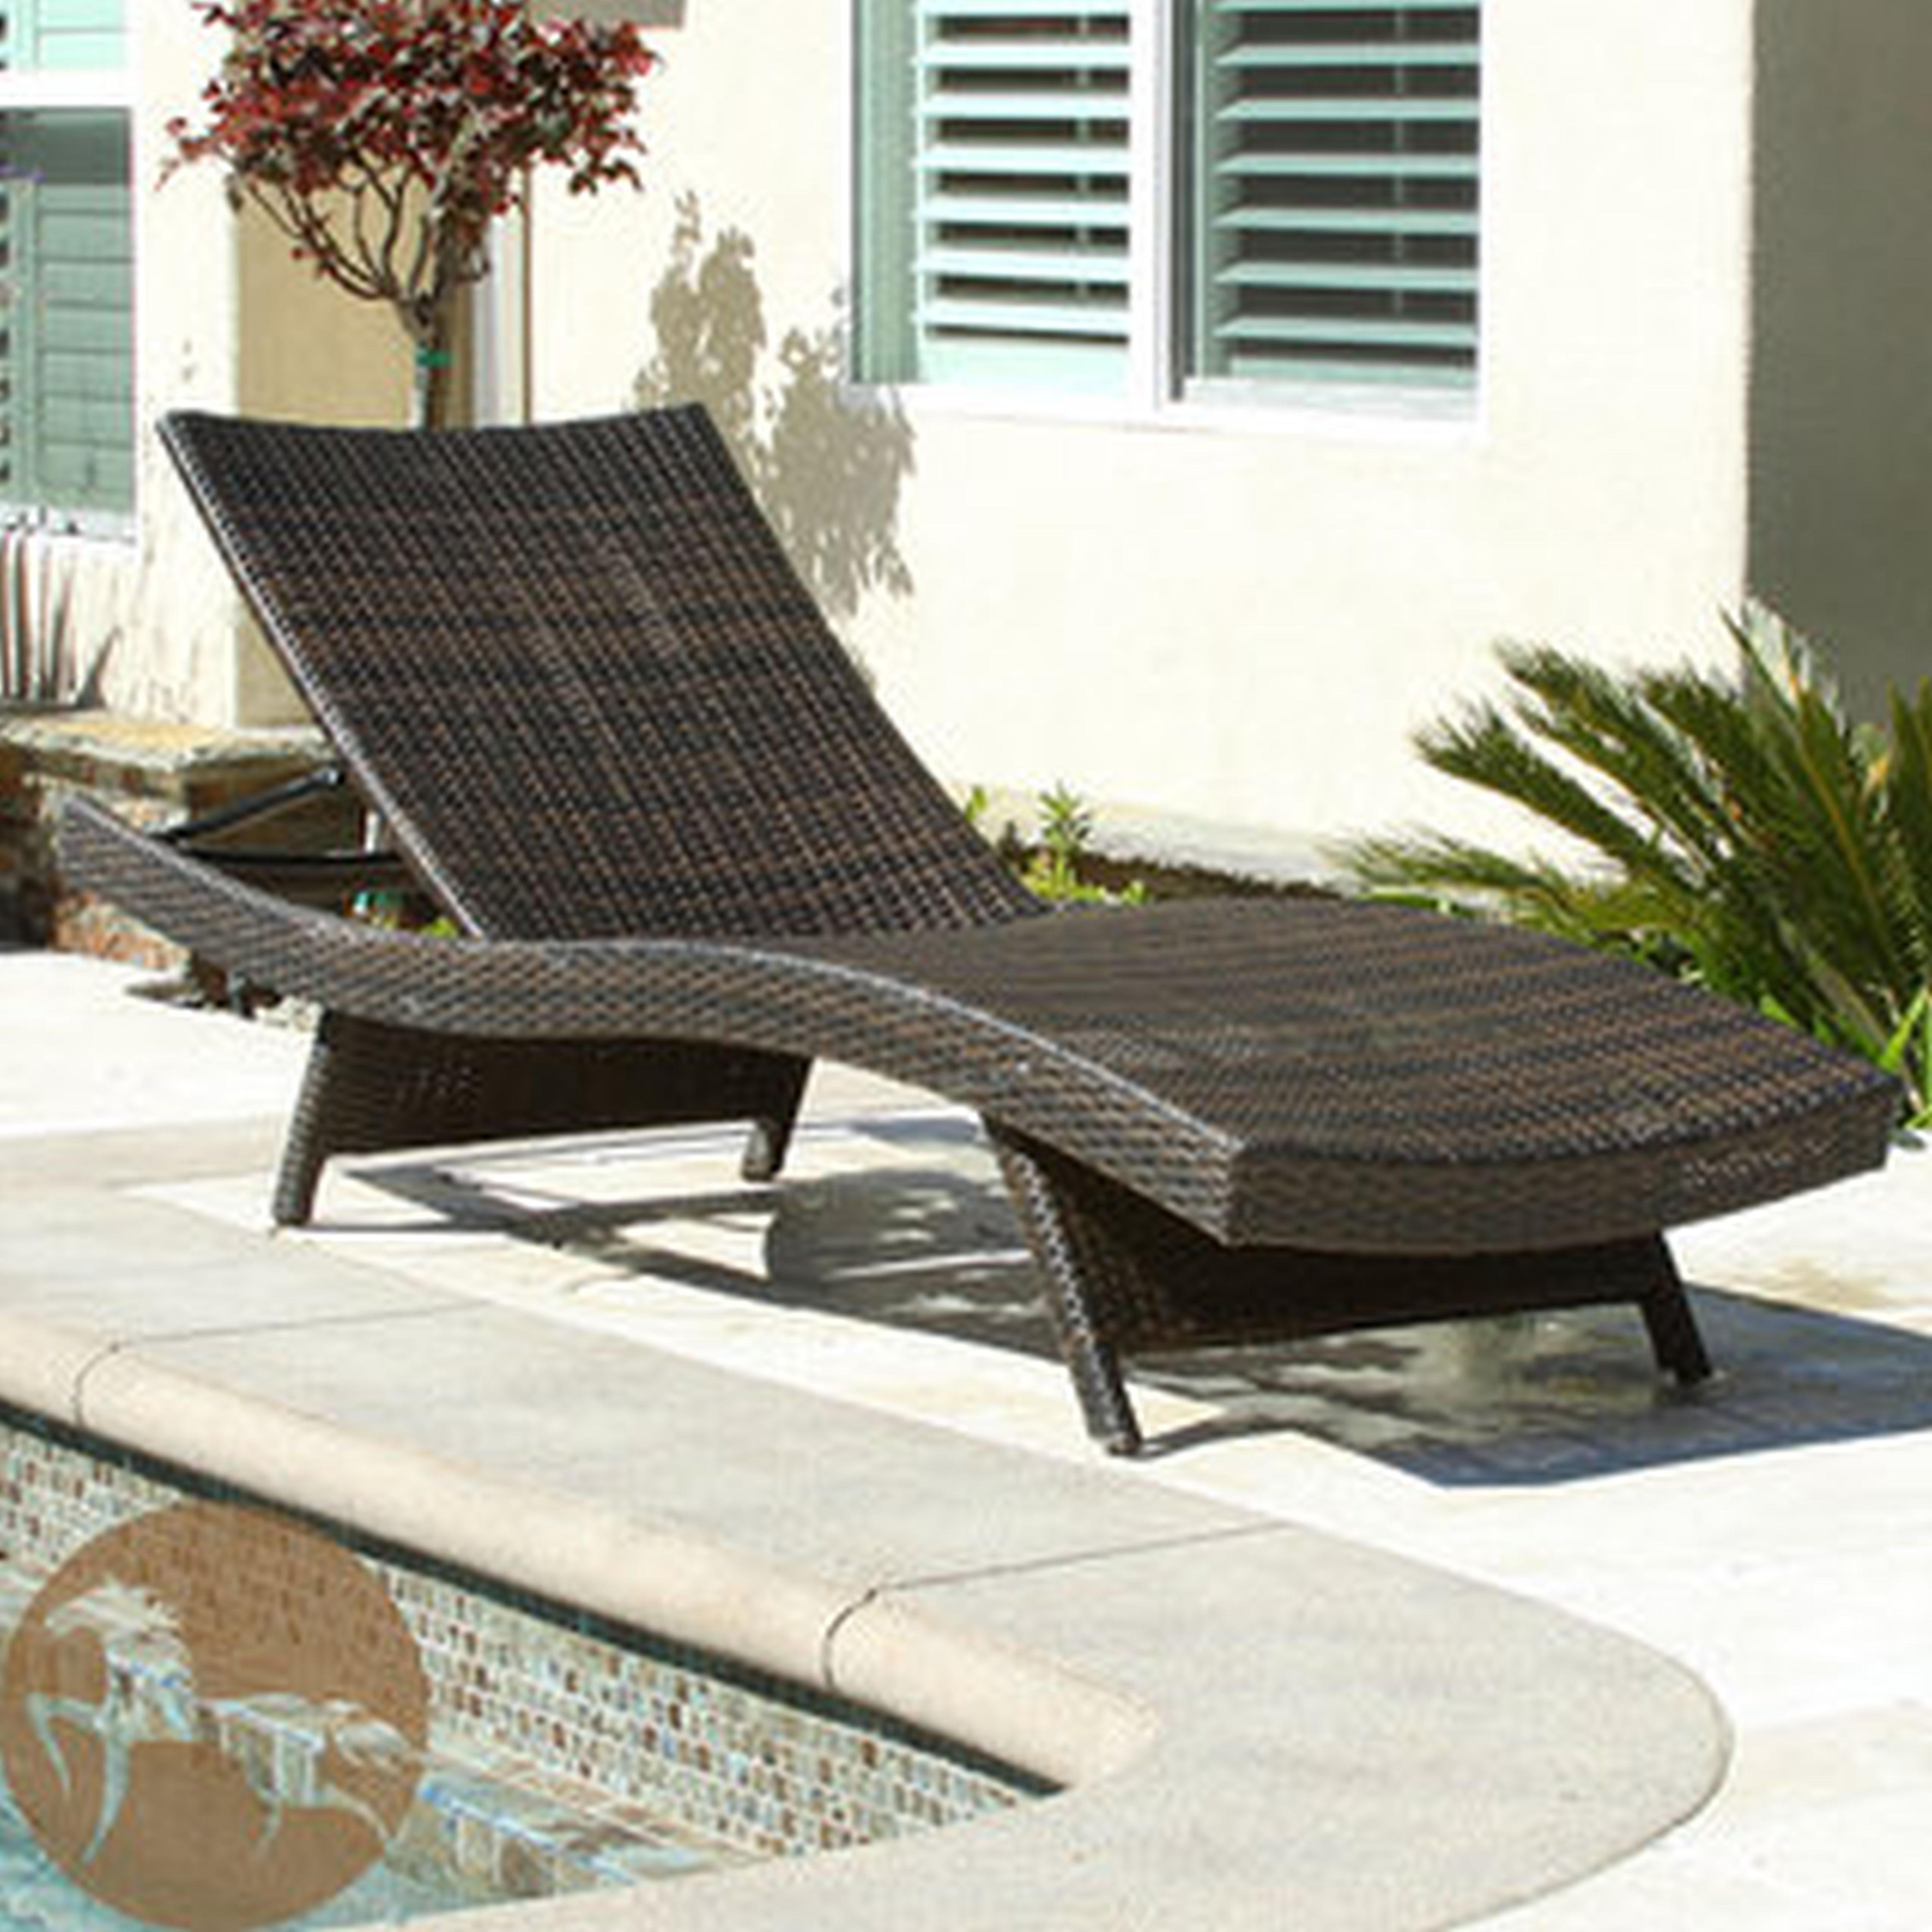 Patio Chaise Lounge As The Must Have Furniture In Your Pool Deck Inside Most Popular Outdoor Pool Furniture Chaise Lounges (View 2 of 15)